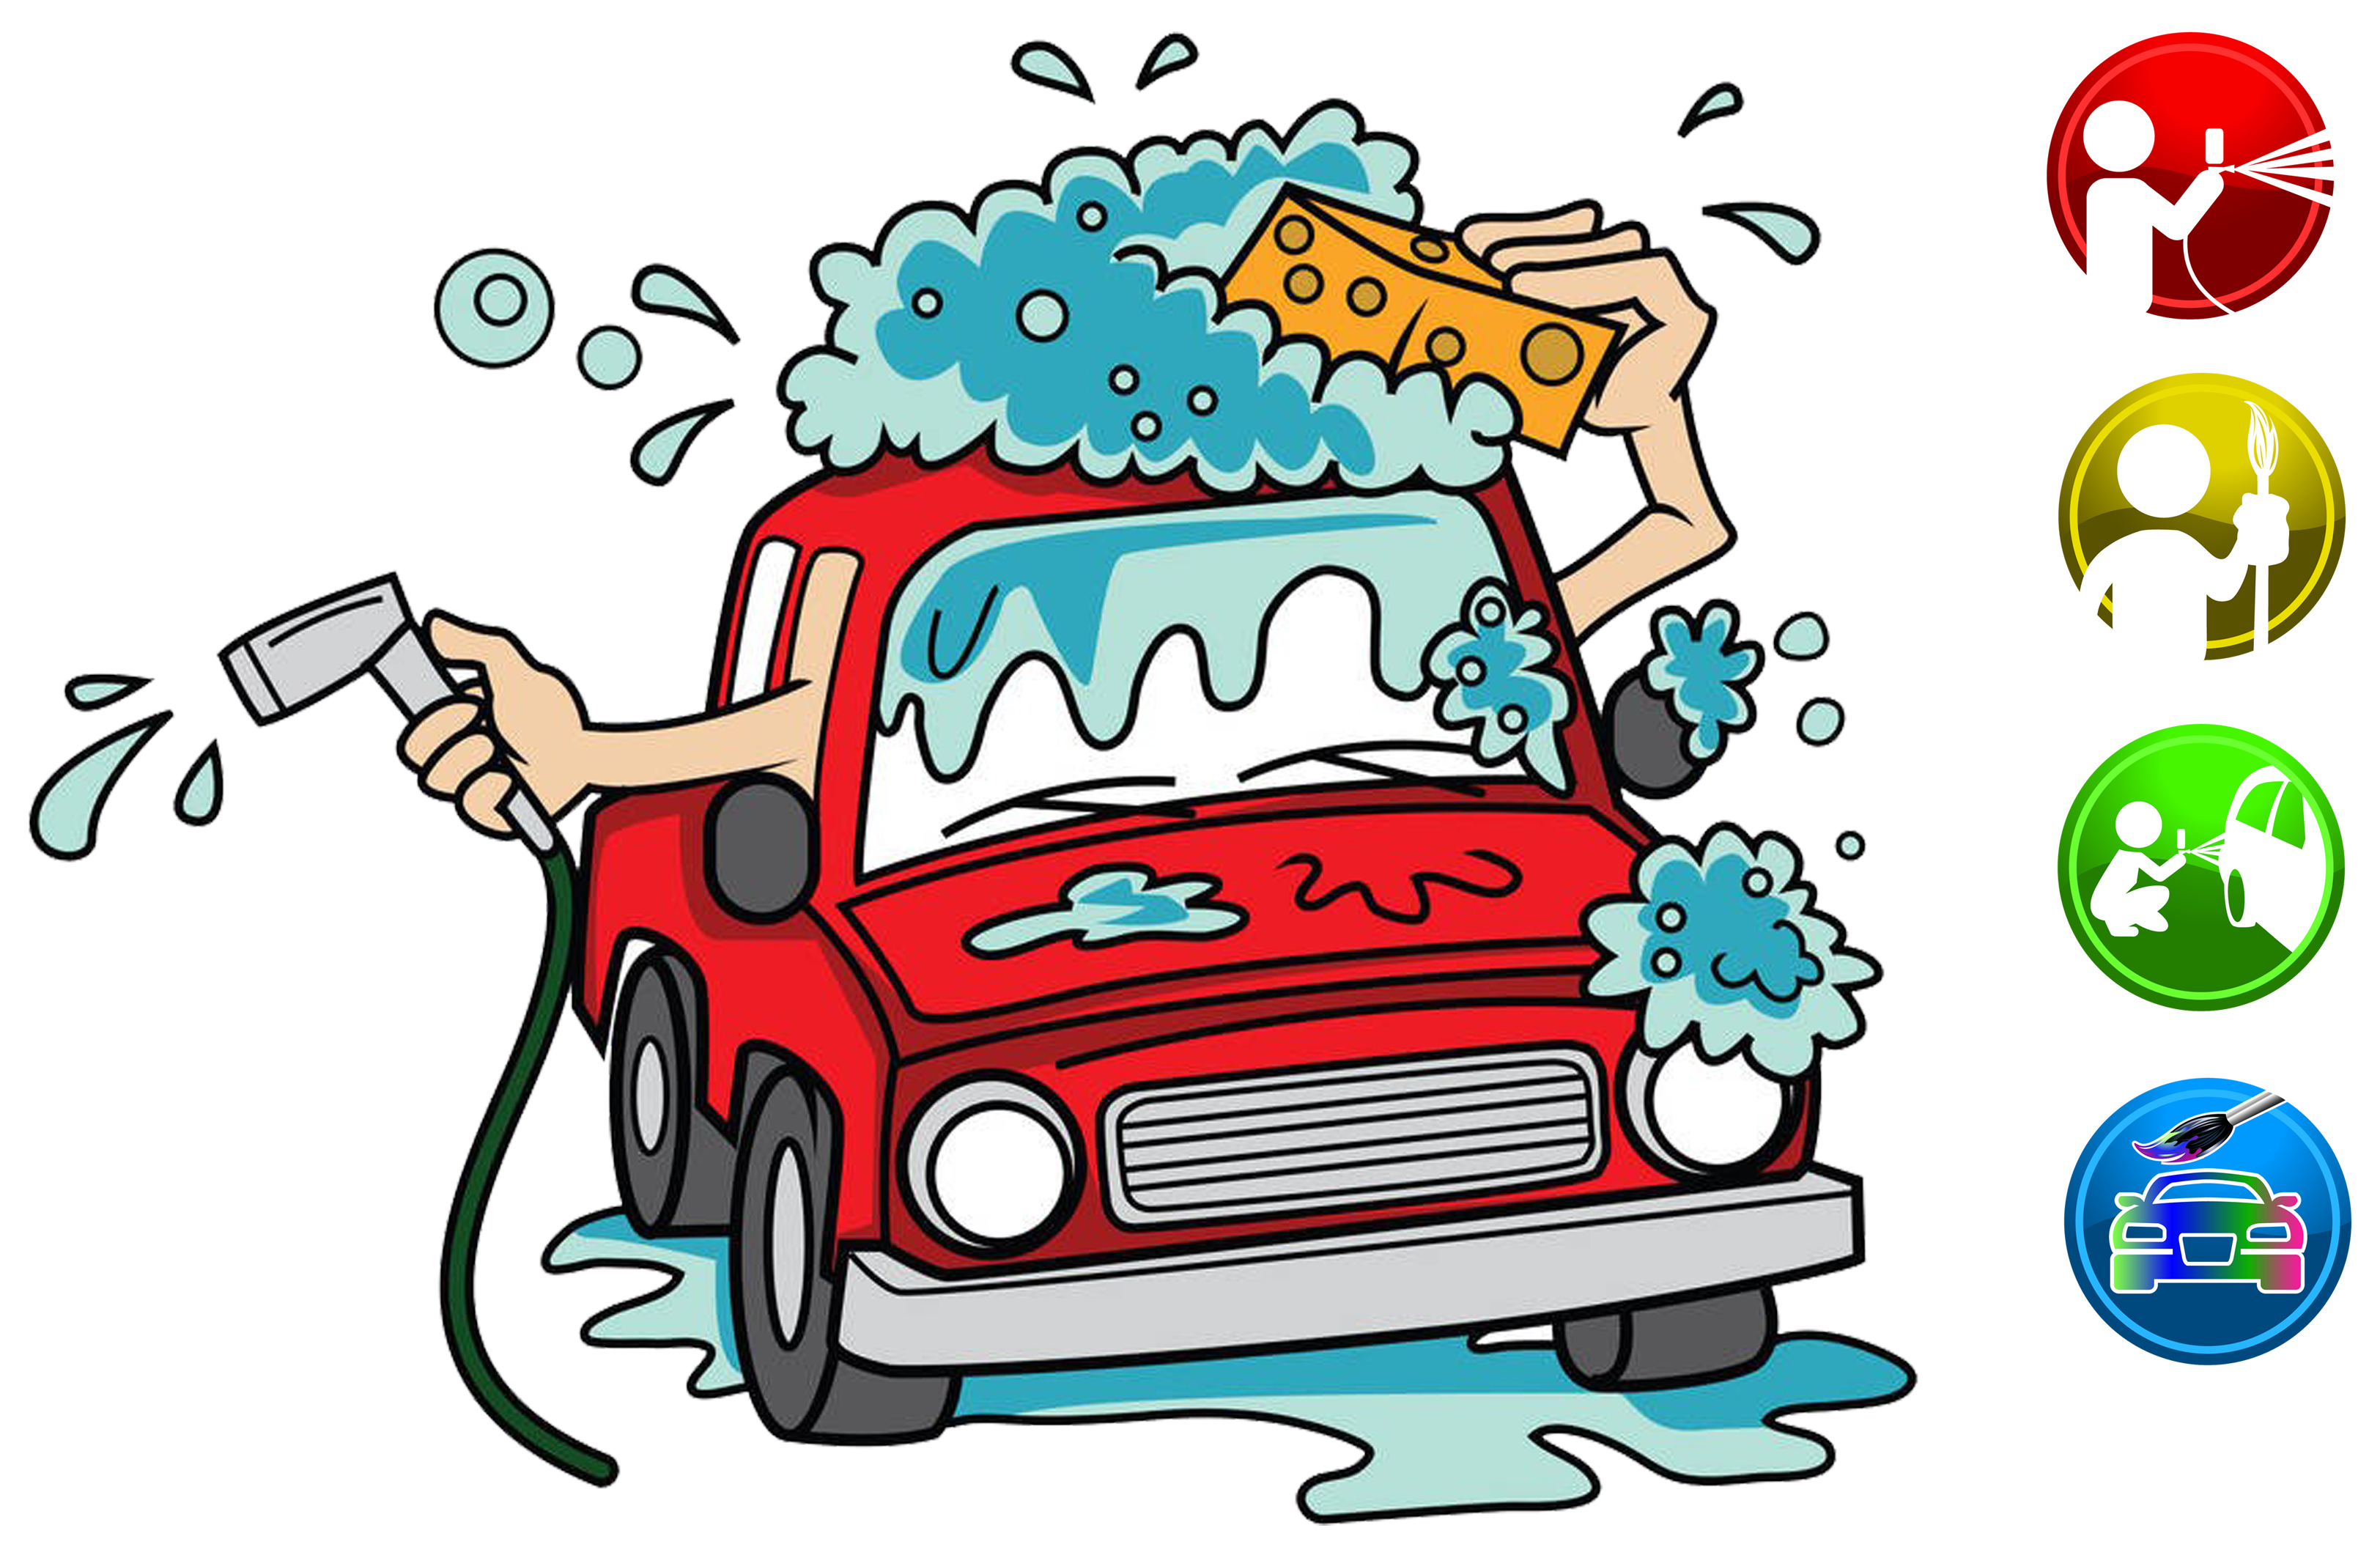 Washing dog clipart transparent Car wash Cartoon Clip art - Cartoon car wash advertisement 3248*2126 ... transparent